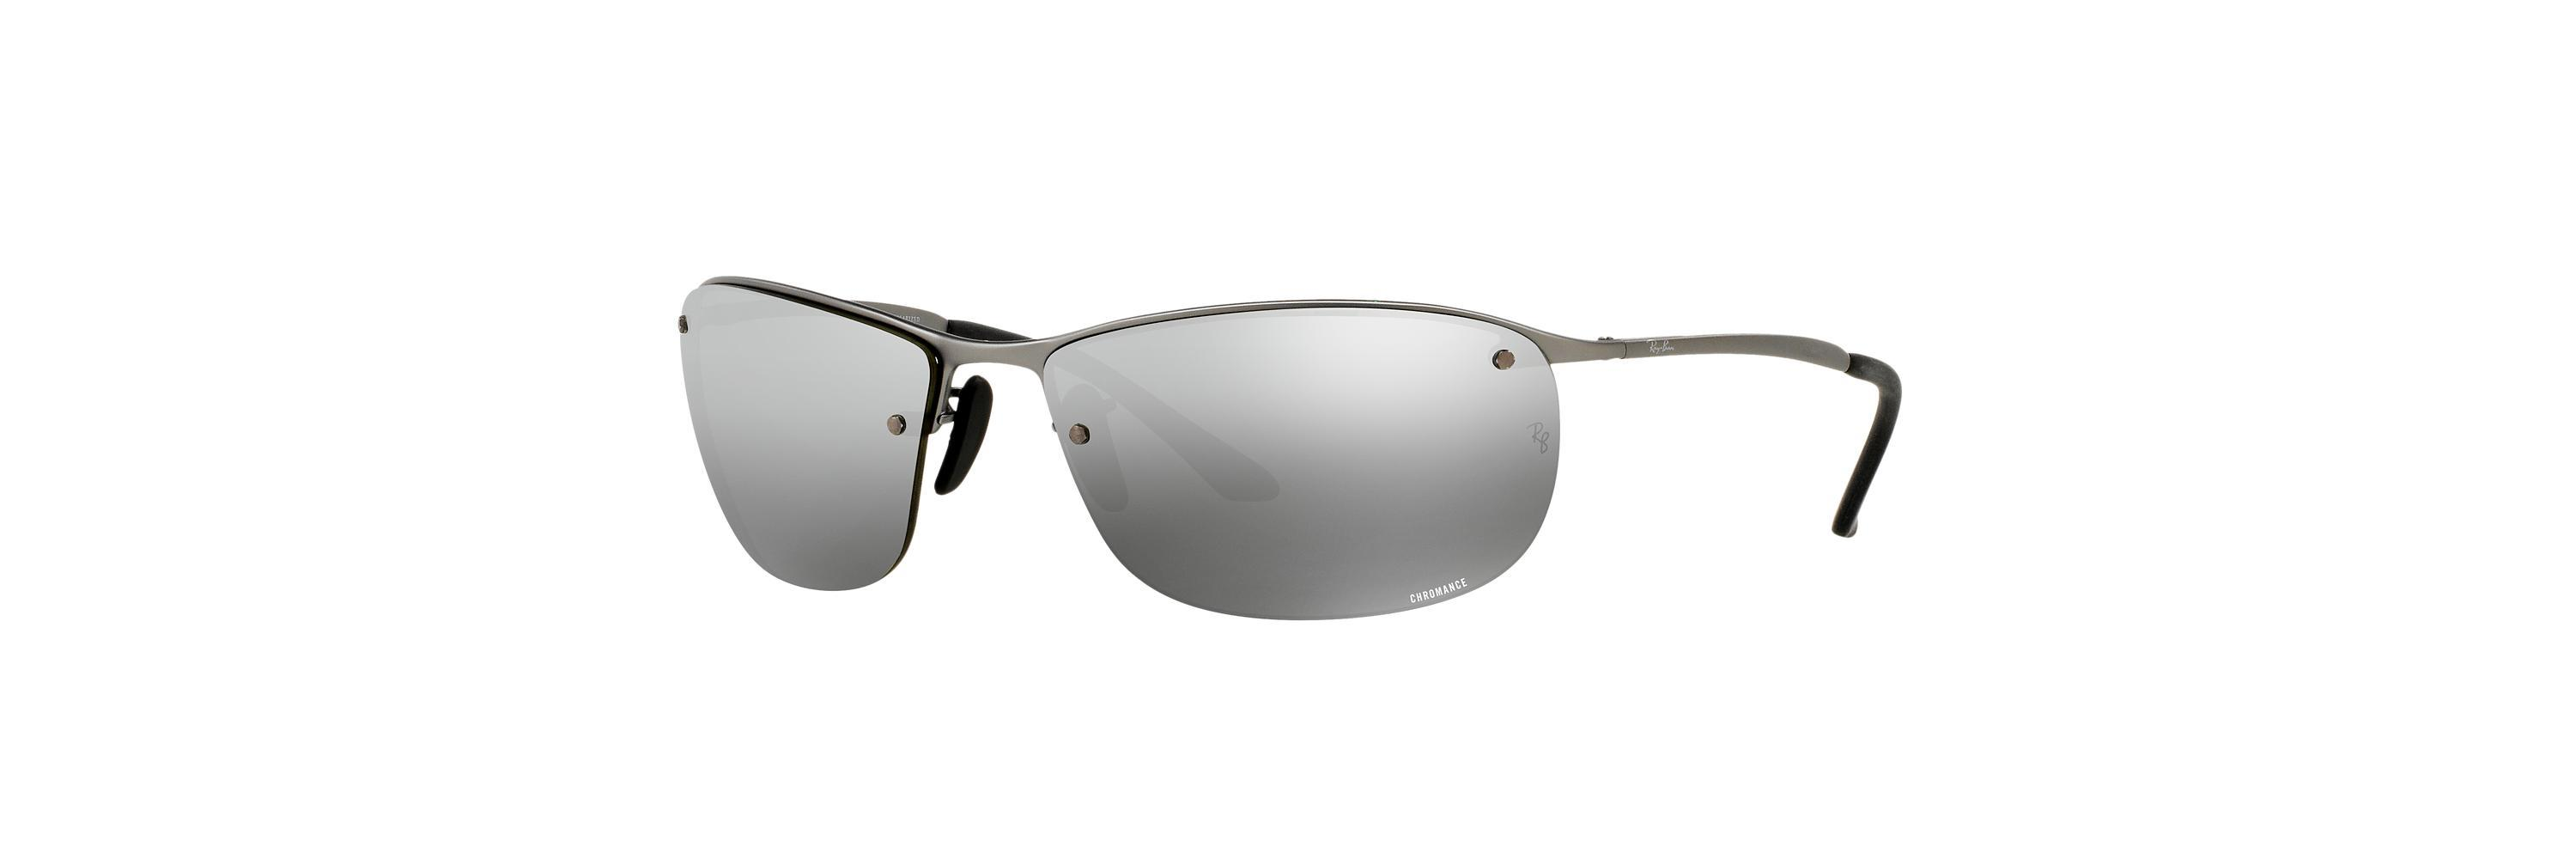 4deb550b76 Ray-Ban - Gray Rb3542 Chromance Collection for Men - Lyst. View fullscreen